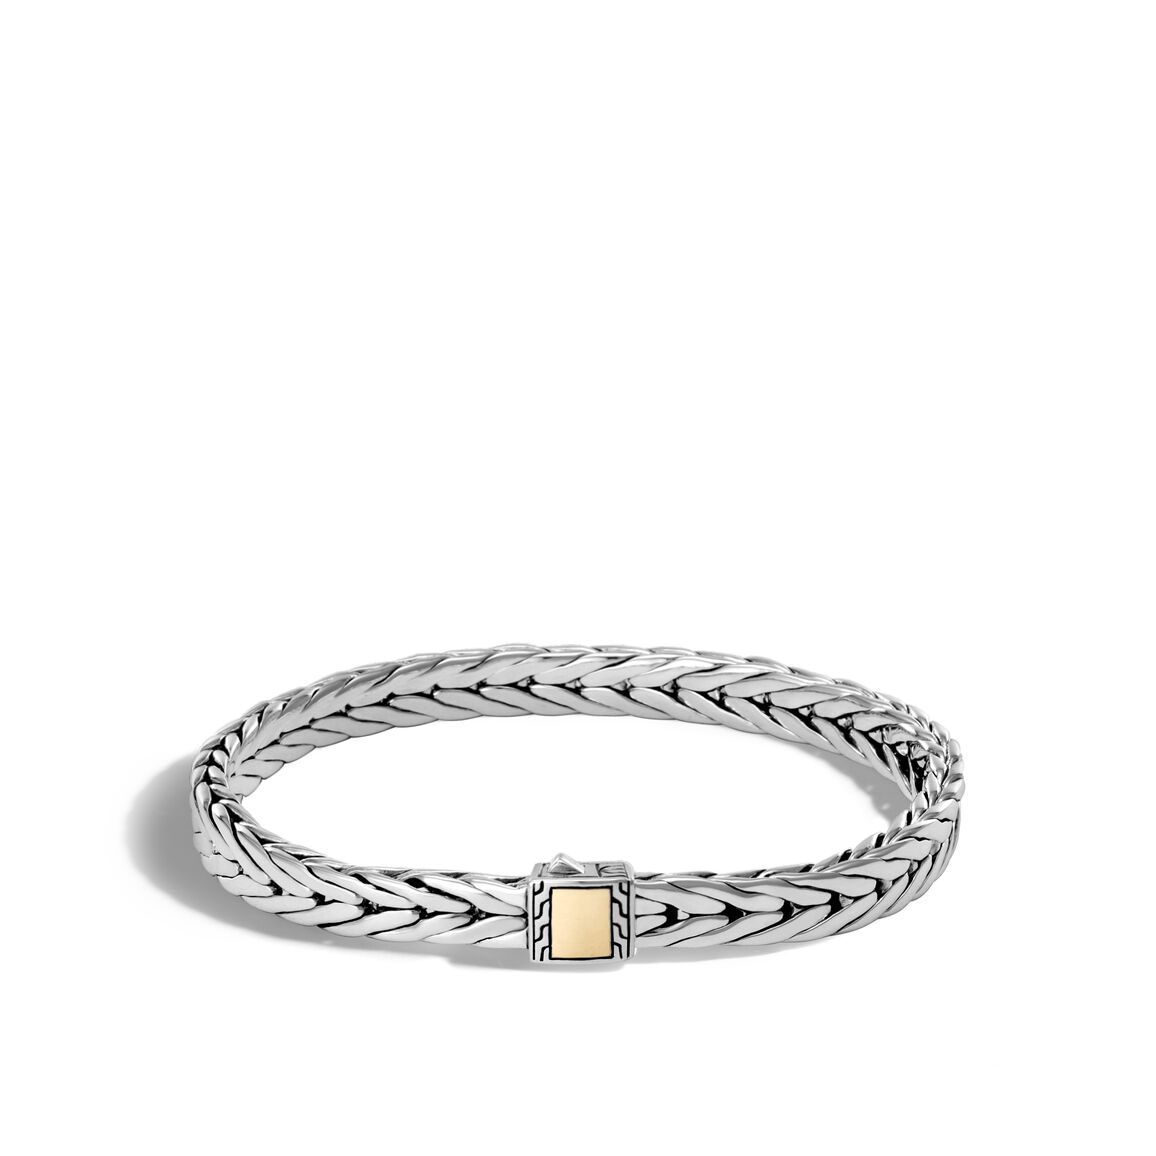 Modern Chain 7MM Bracelet in Silver and 18K Gold